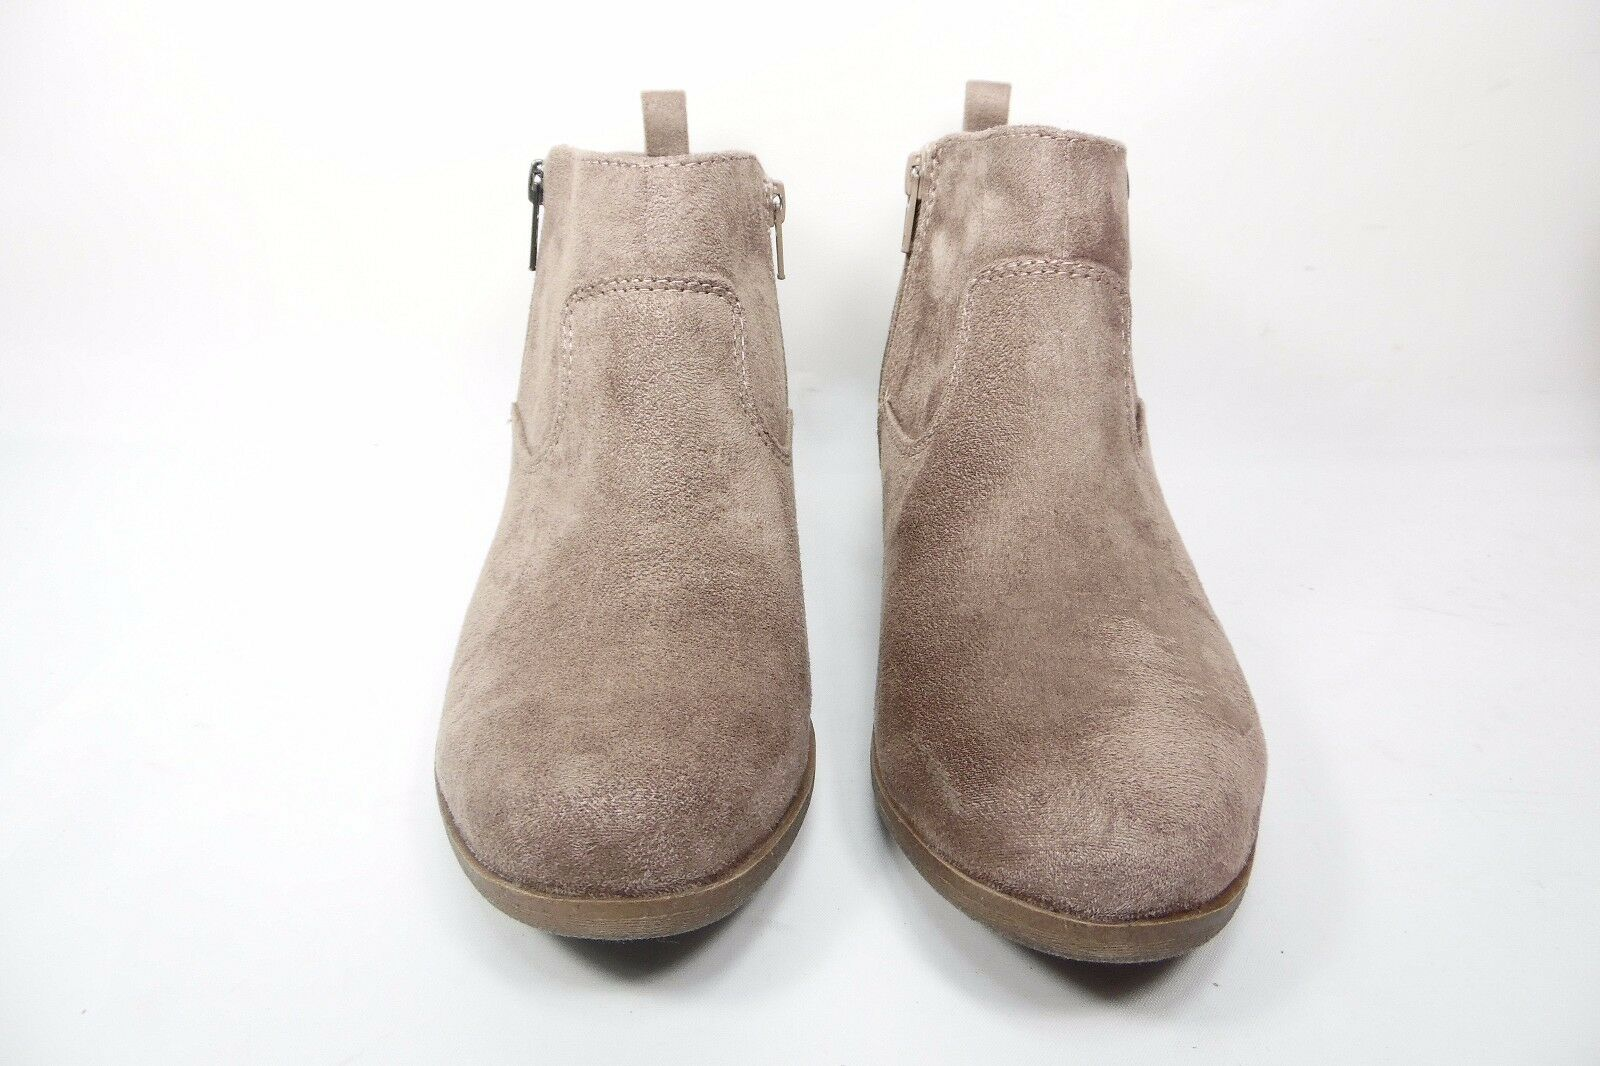 Arizona Jean Co. Galvin Womens Ankle Booties Light Taupe Size 9M